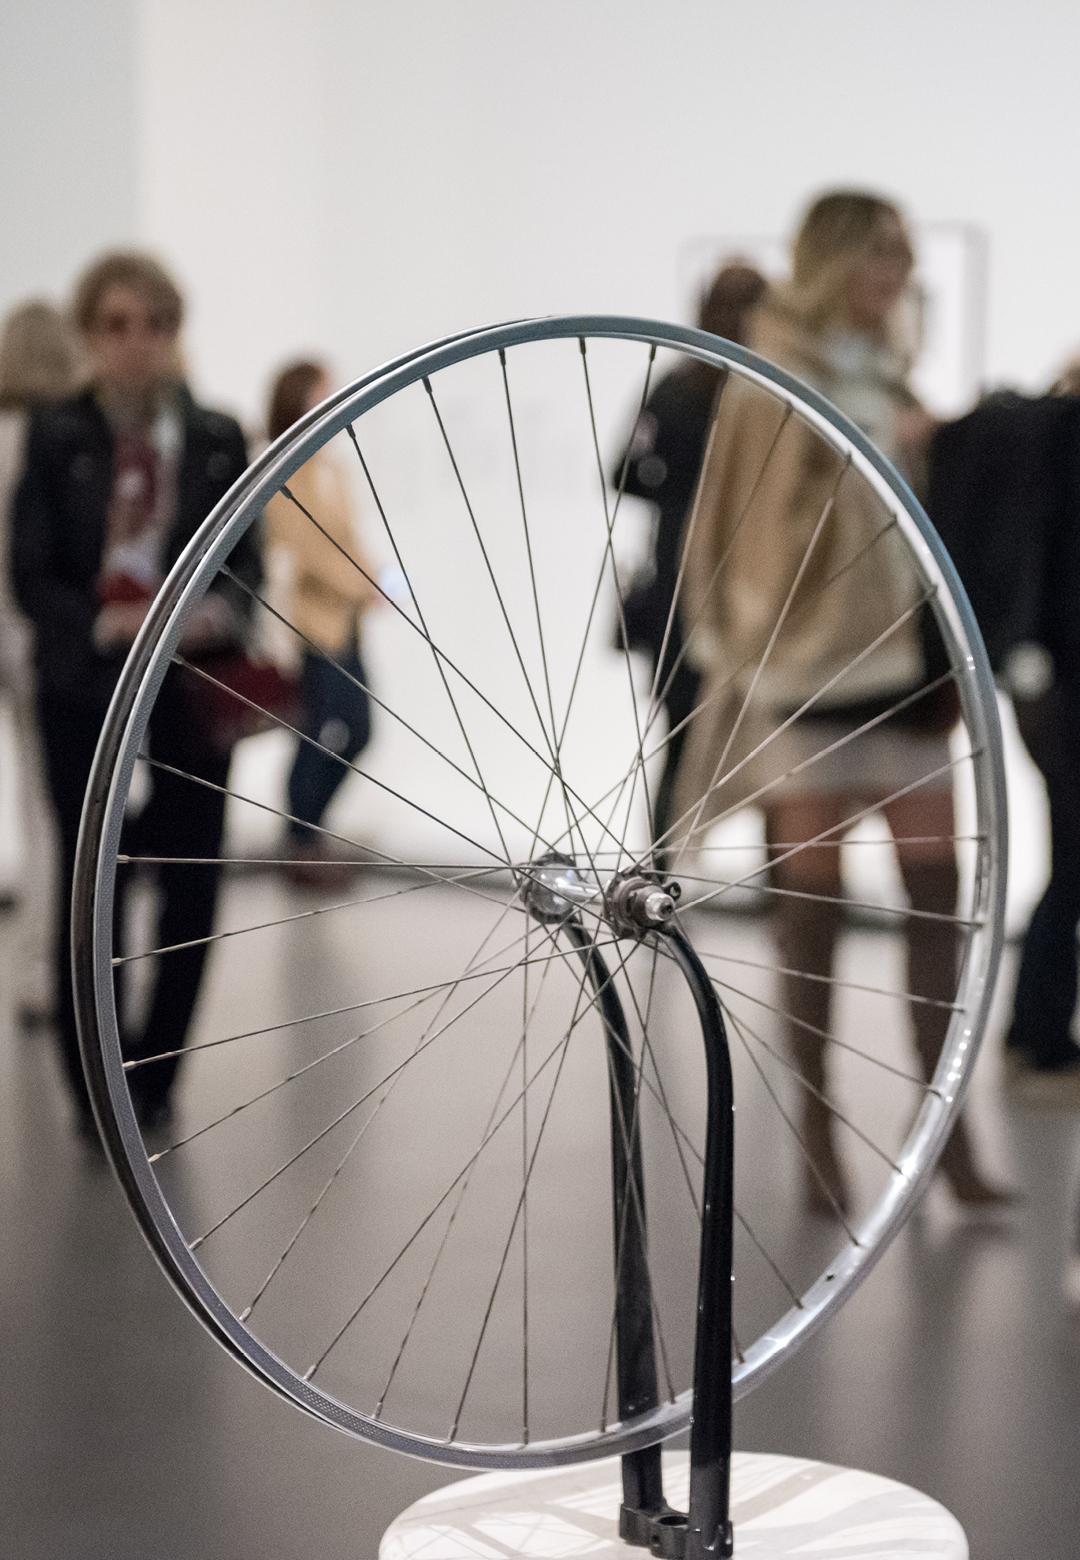 Bicycle Wheel, Marcel Duchamp, 1951, third version after the lost original of 1914, Museum of Modern Art | Museum of Modern Art| STIR